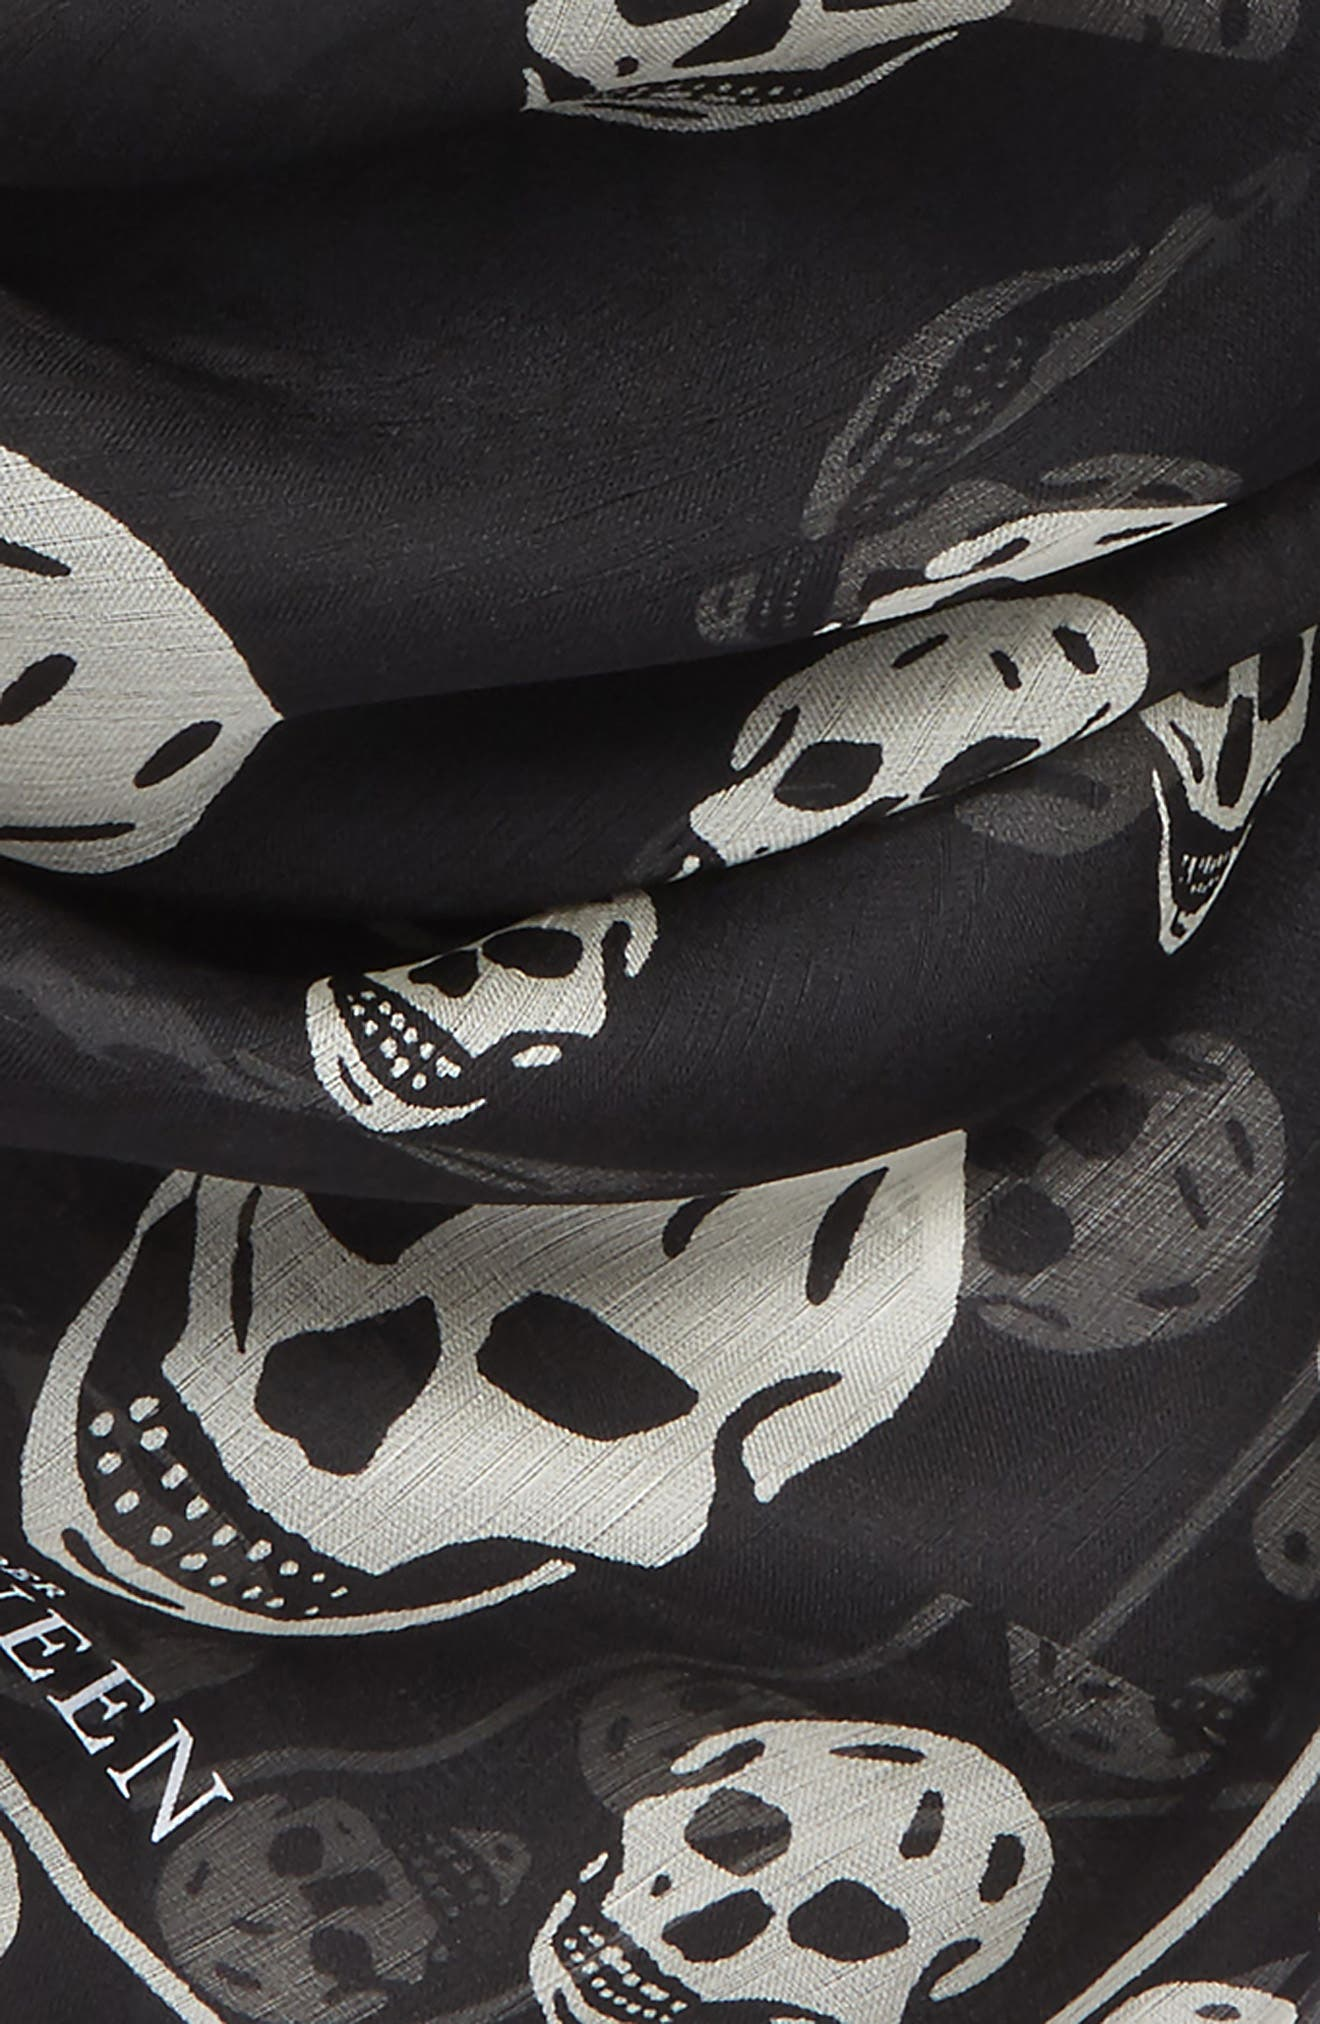 Skull Foulard Silk Scarf,                             Alternate thumbnail 4, color,                             BLACK/ IVORY